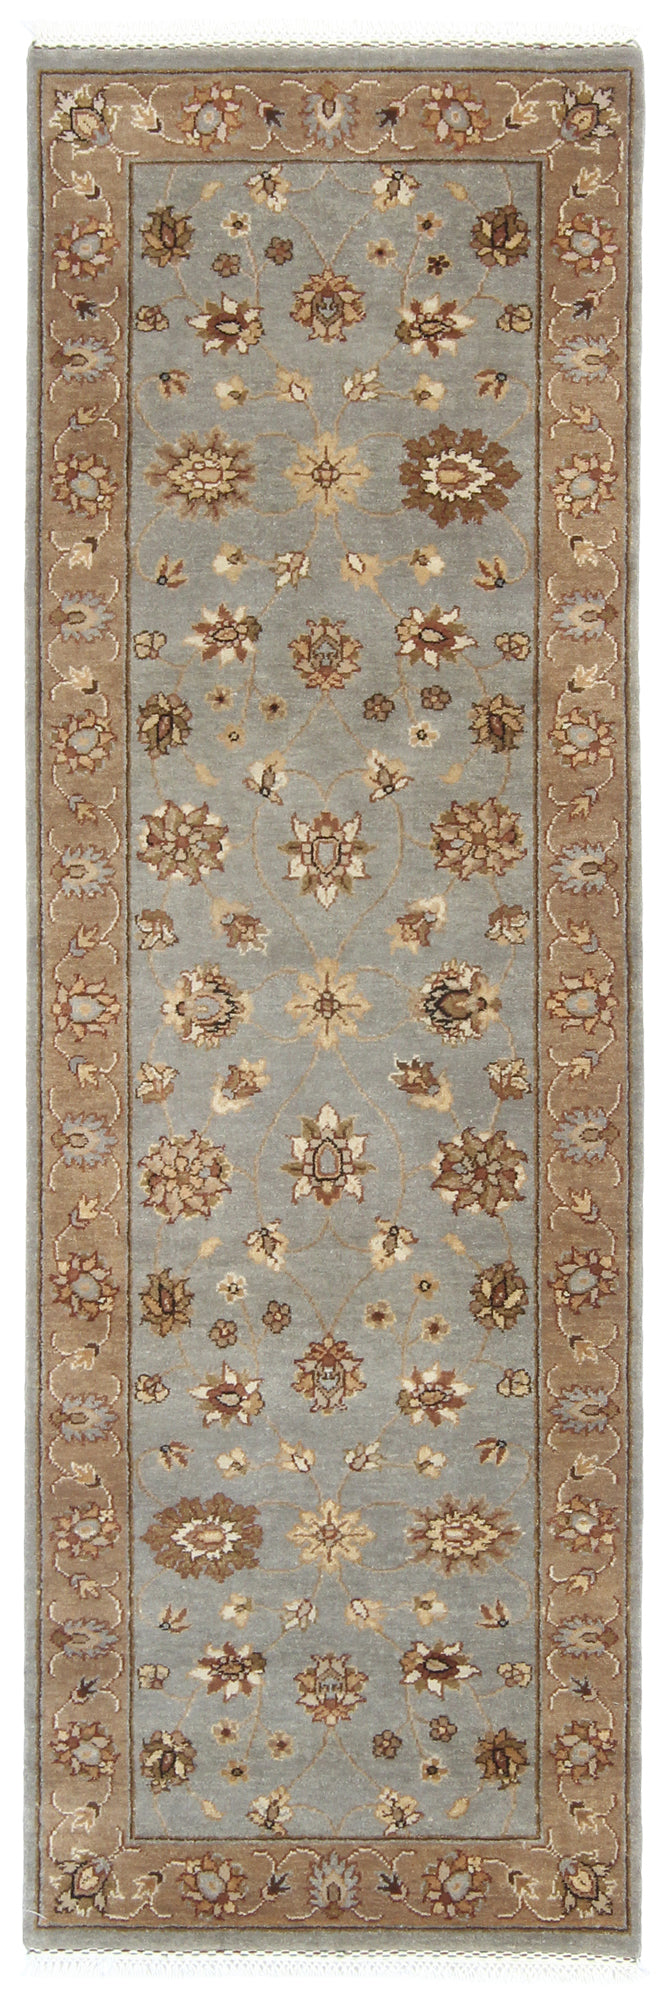 Tabriz Design Runner